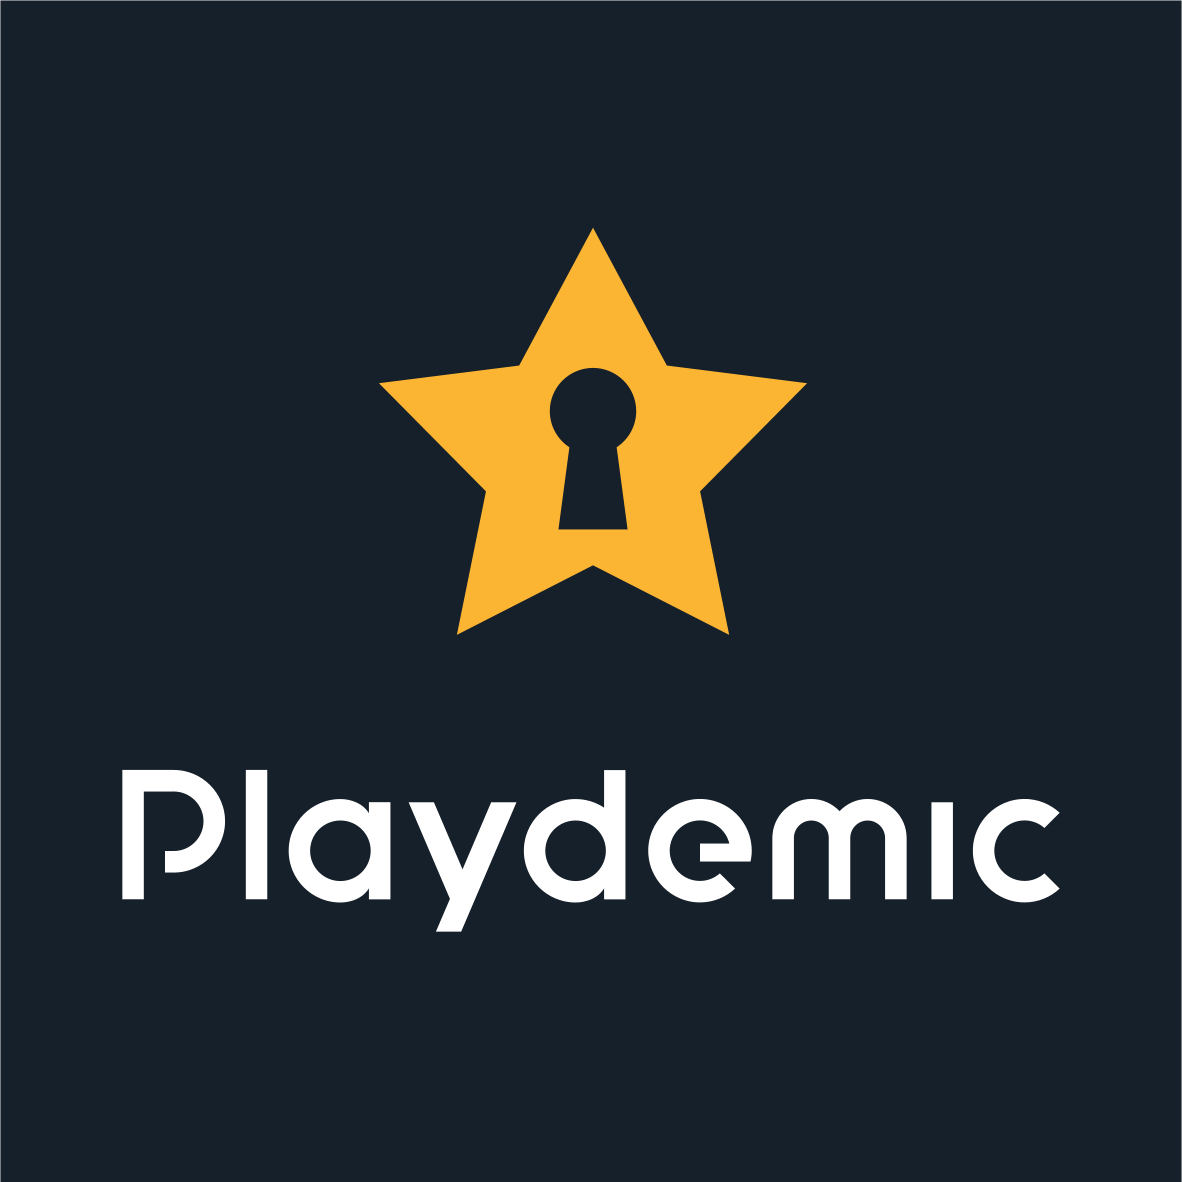 Playdemic Ltd